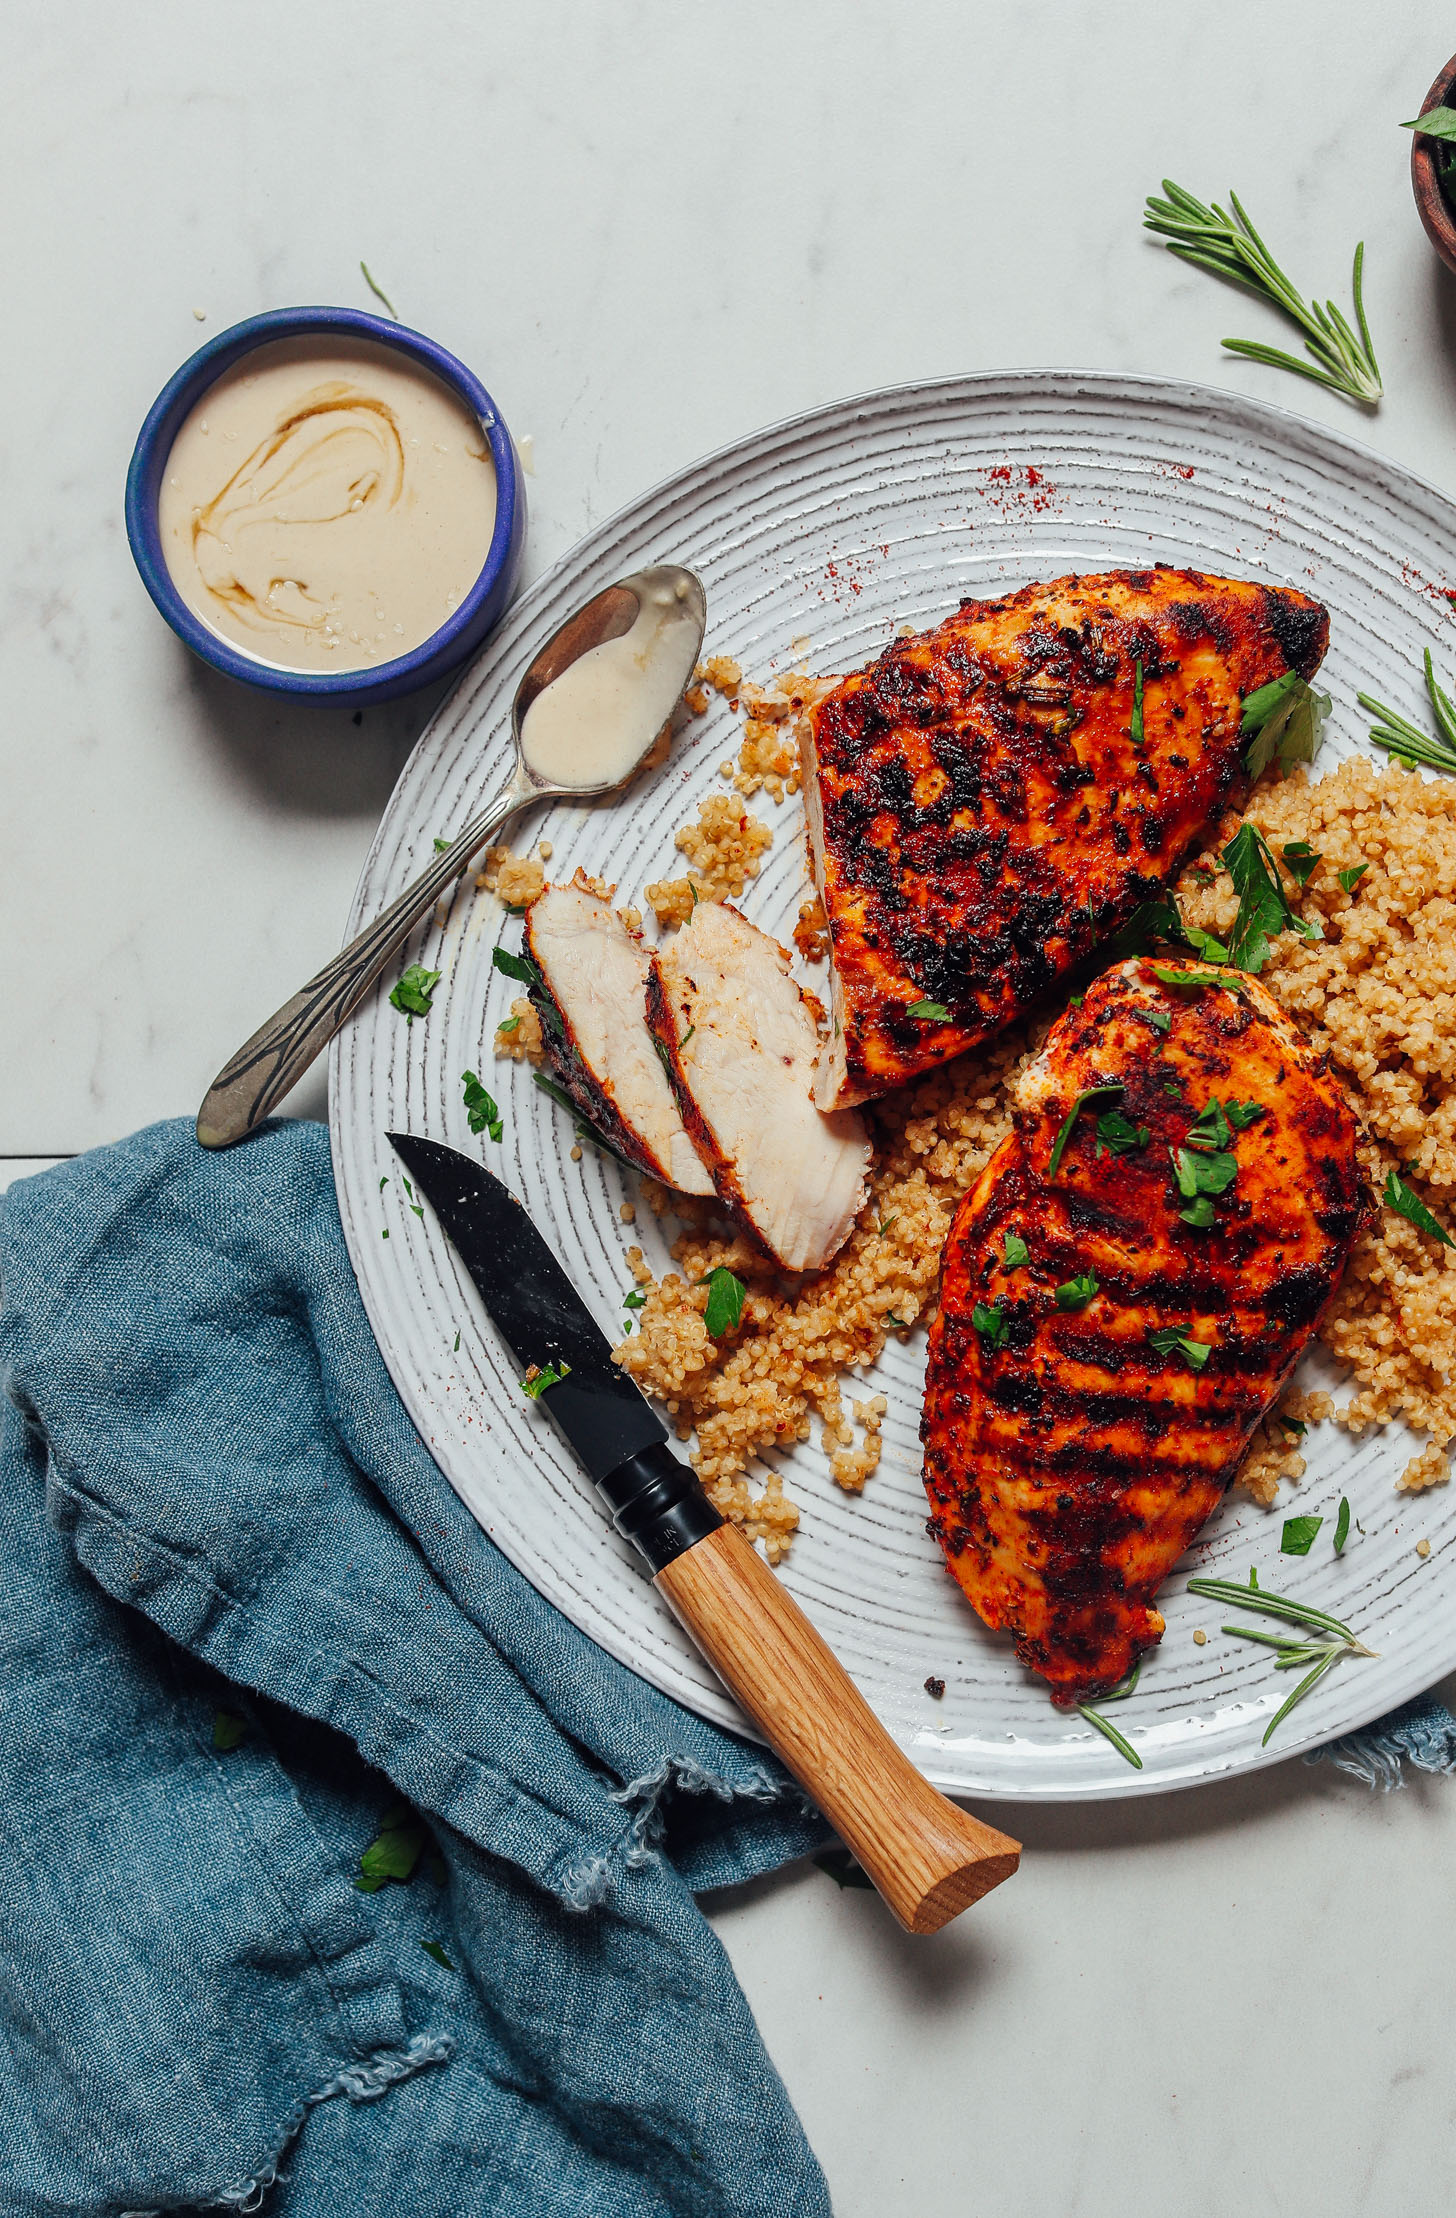 Bowl of tahini sauce beside a plate of Marinated Grilled Chicken Breasts served over quinoa